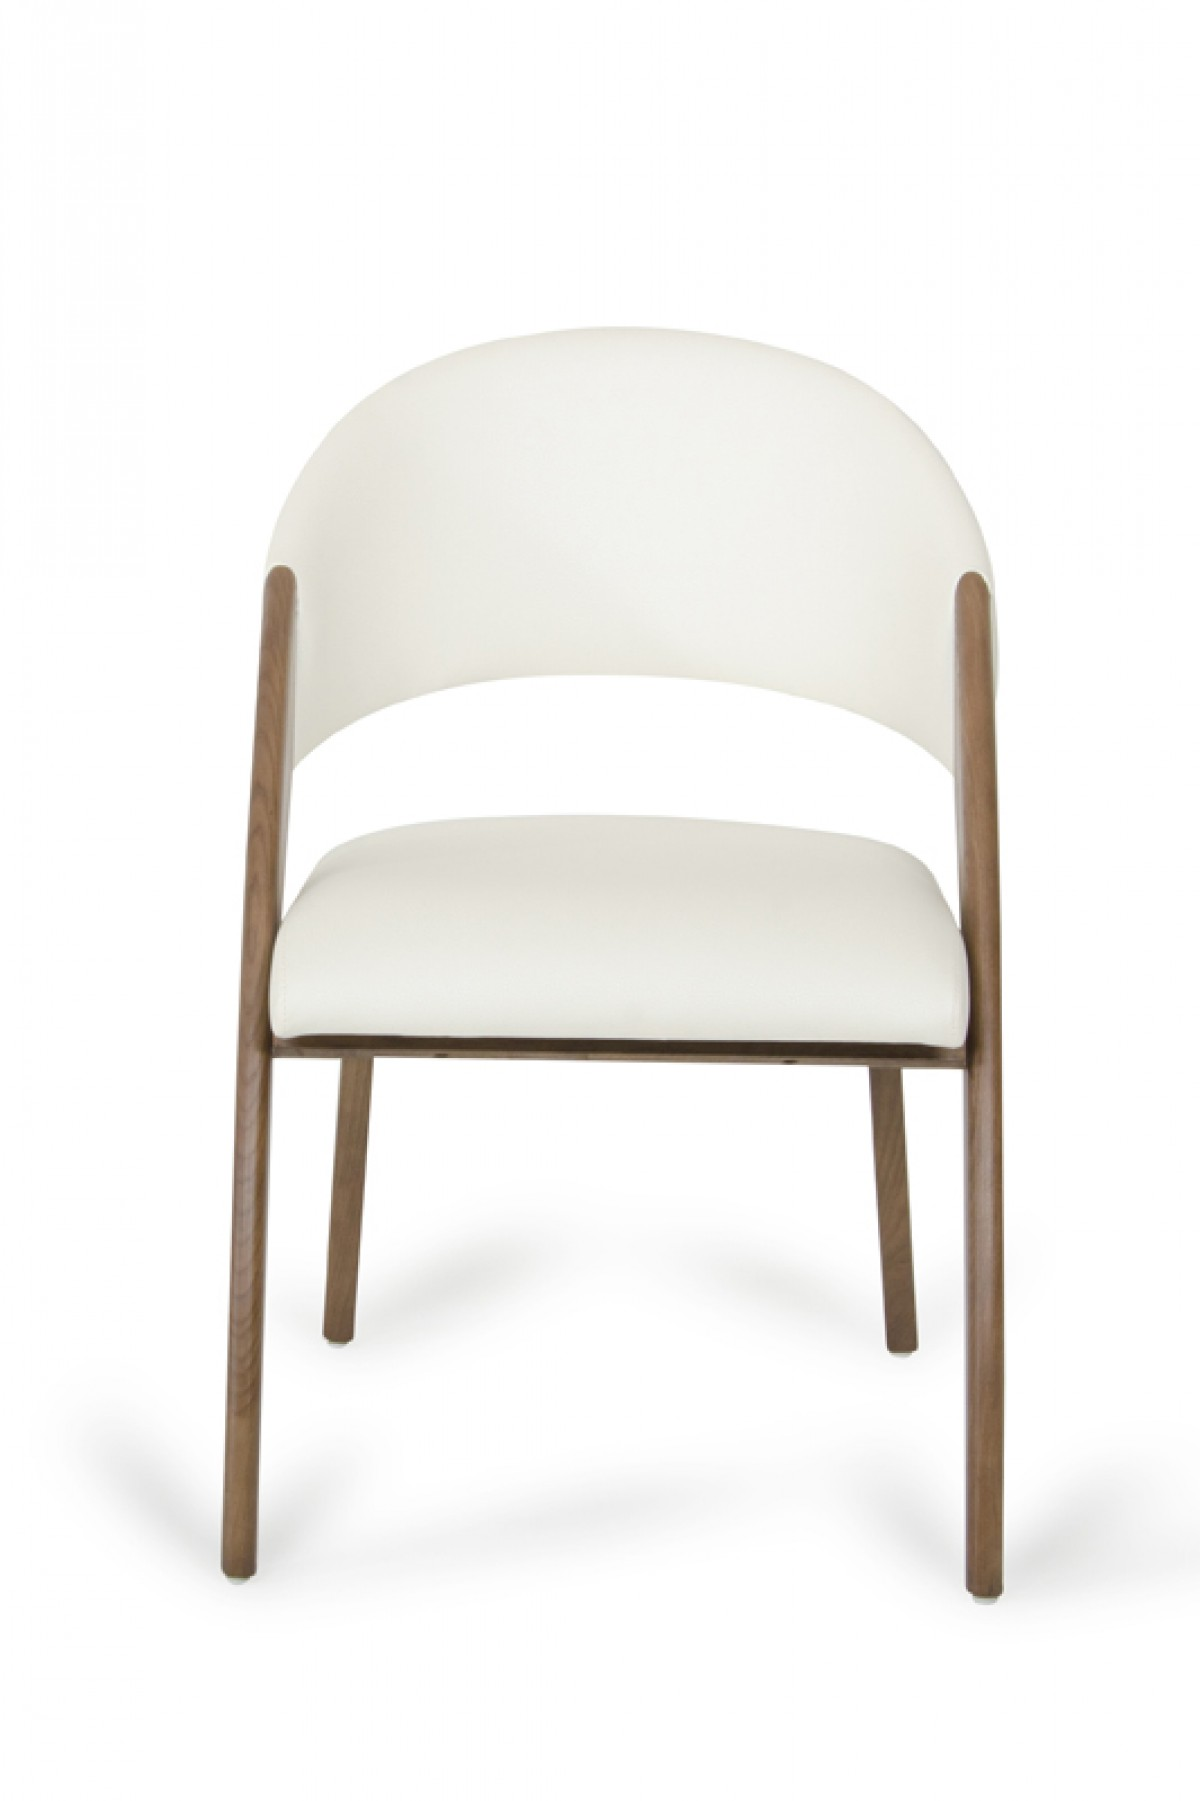 Modrest lucas modern cream walnut dining chair for Walnut dining chairs modern